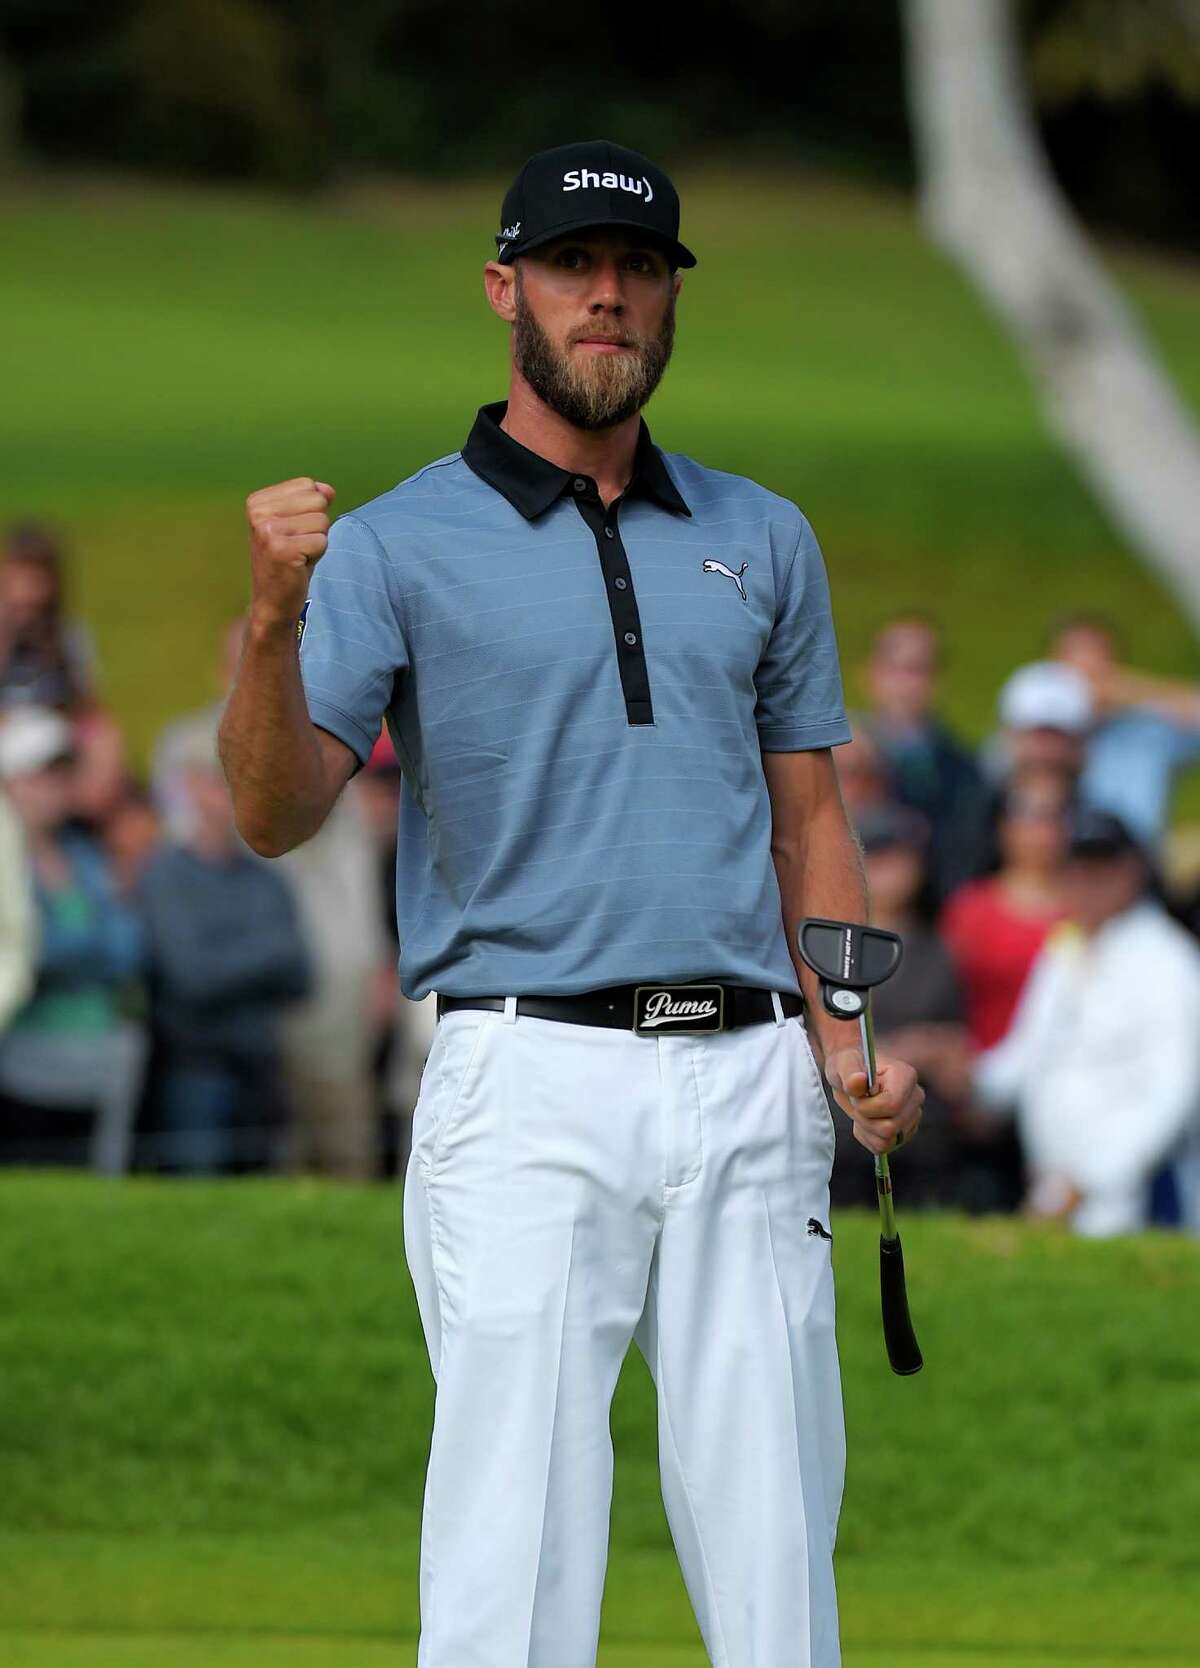 Graham DeLaet reacts after sinking a birdie putt on the 16th hole during the third round of the Northern Trust Open golf tournament at Riviera Country Club, Saturday, Feb. 21, 2015, in Los Angeles. (AP Photo/Mark J. Terrill)